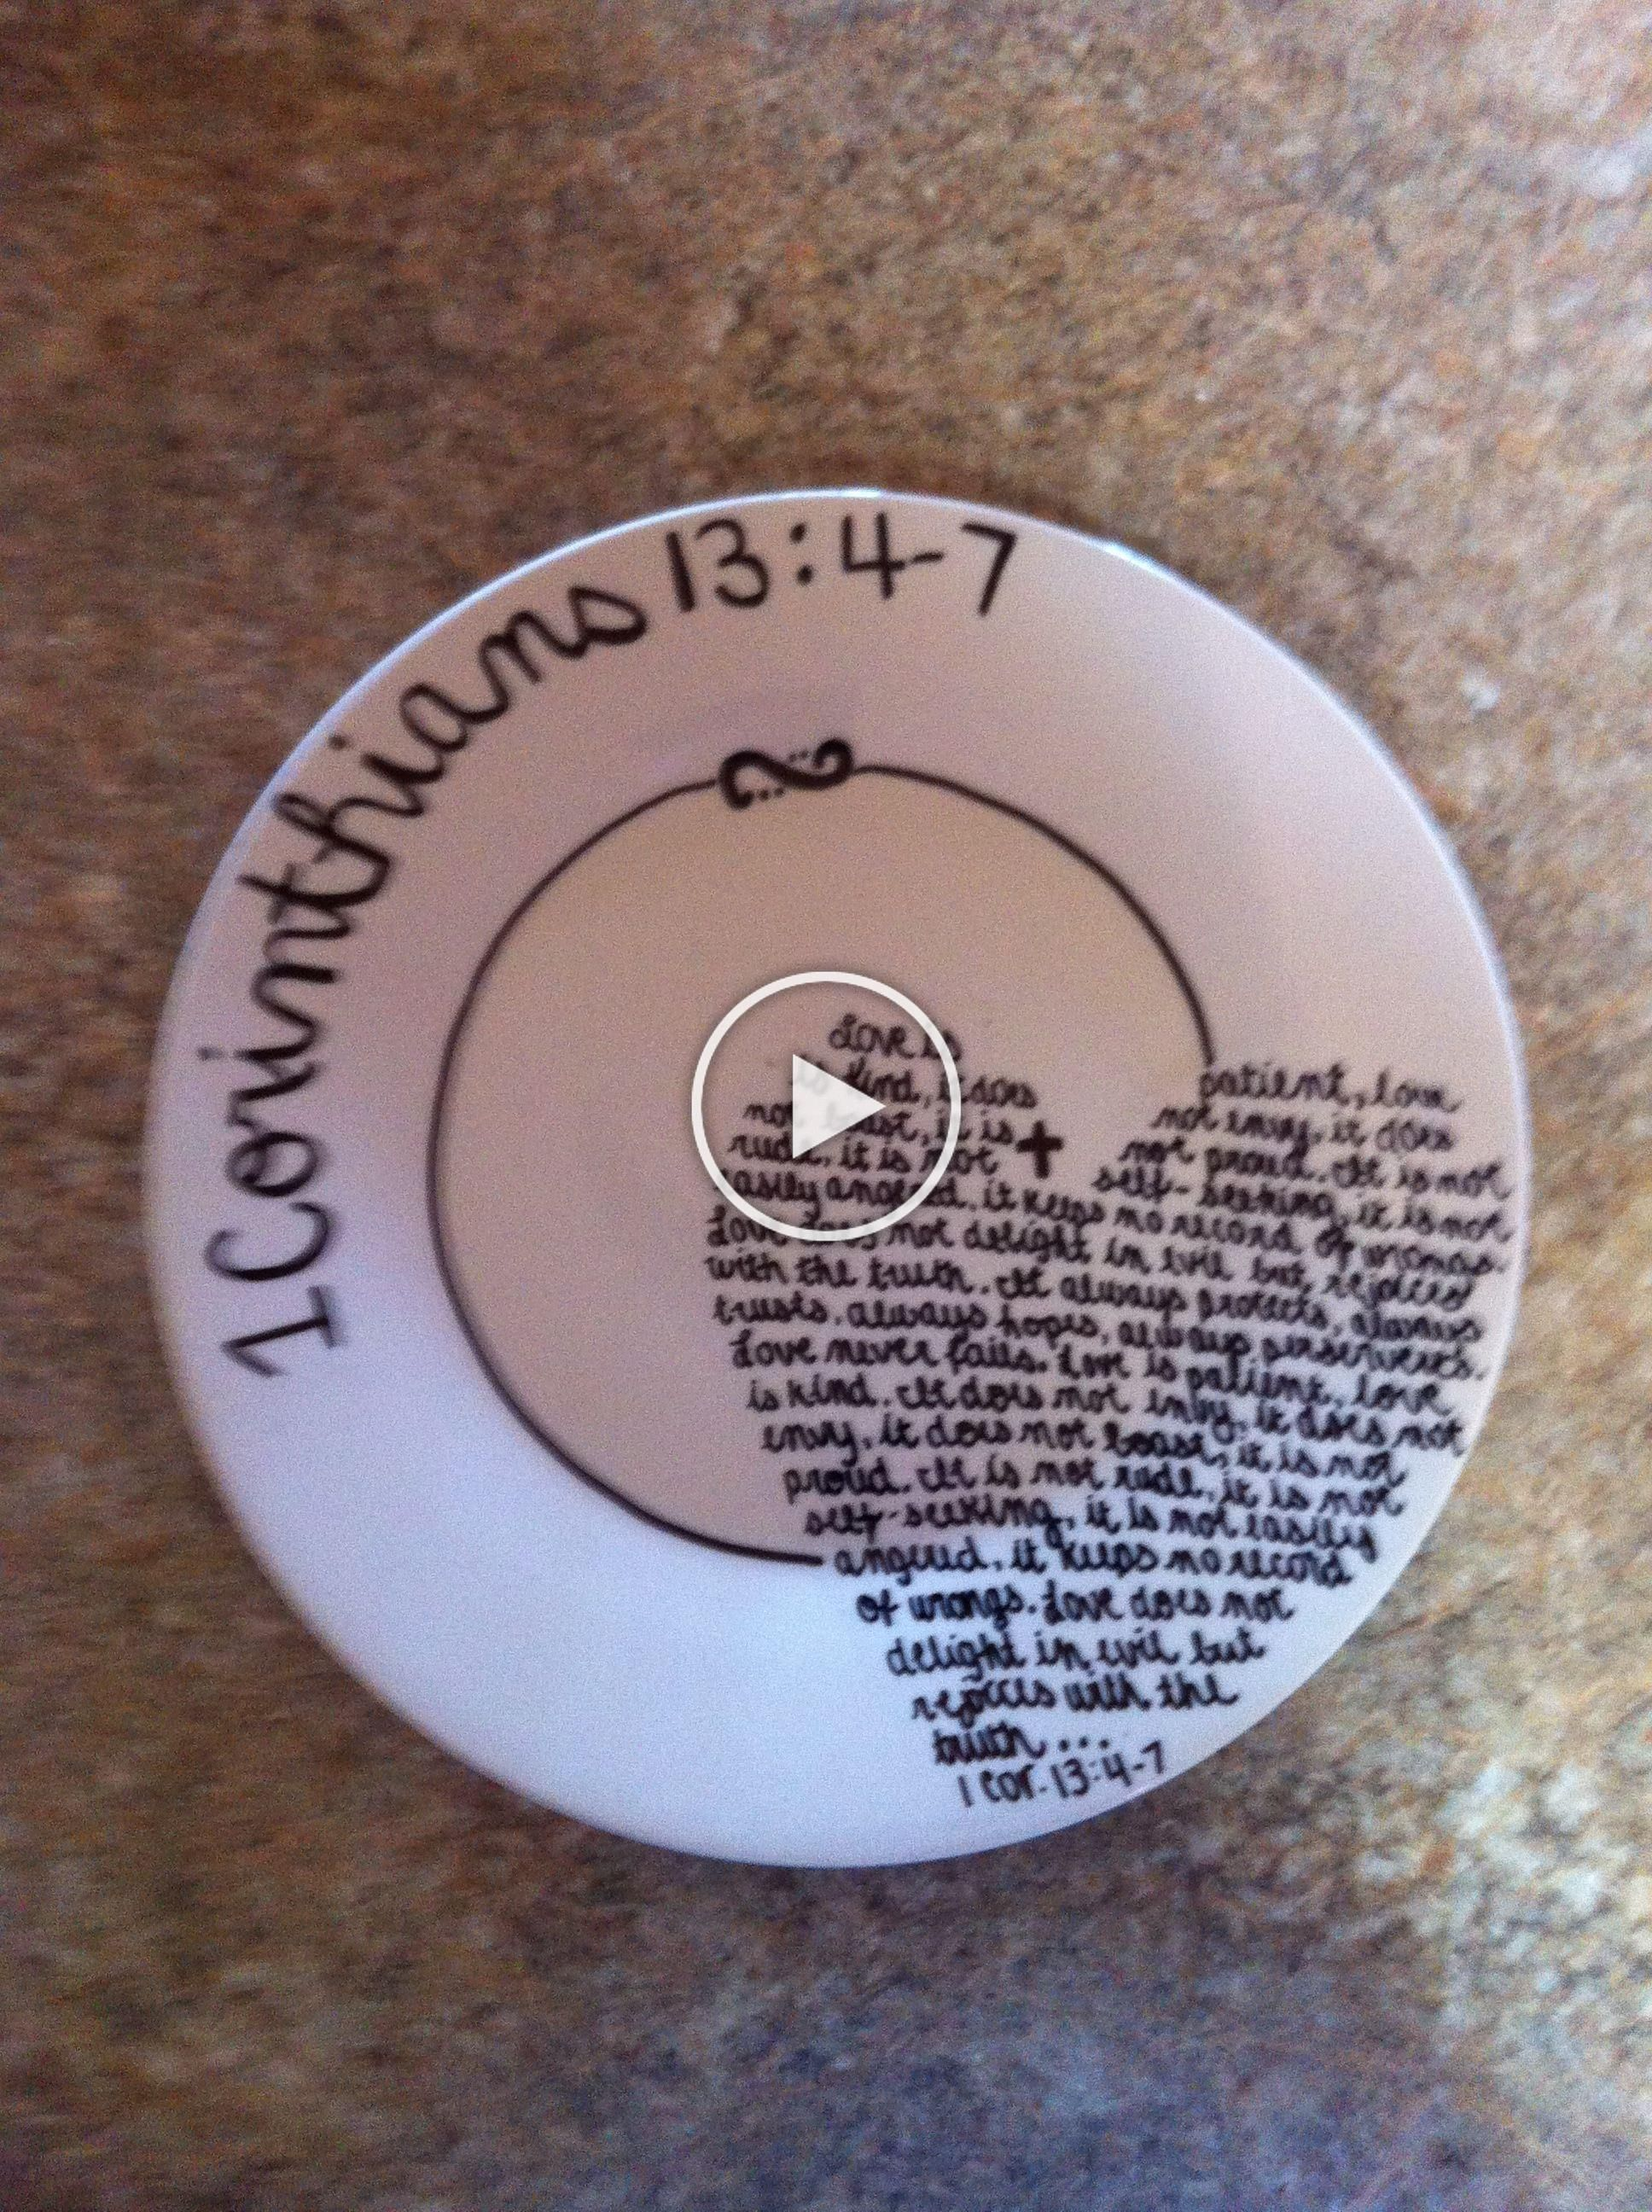 #scripture #something #sharpie #design #plates #plate #maybe #could #them #with #this #take #they #can #andDIY sharpie plate!  Maybe not this design or scripture, but we could put something on the plates and it can be something they take with them :) #sharpieplates #scripture #something #sharpie #design #plates #plate #maybe #could #them #with #this #take #they #can #andDIY sharpie plate!  Maybe not this design or scripture, but we could put something on the plates and it can be something they t #sharpieplates